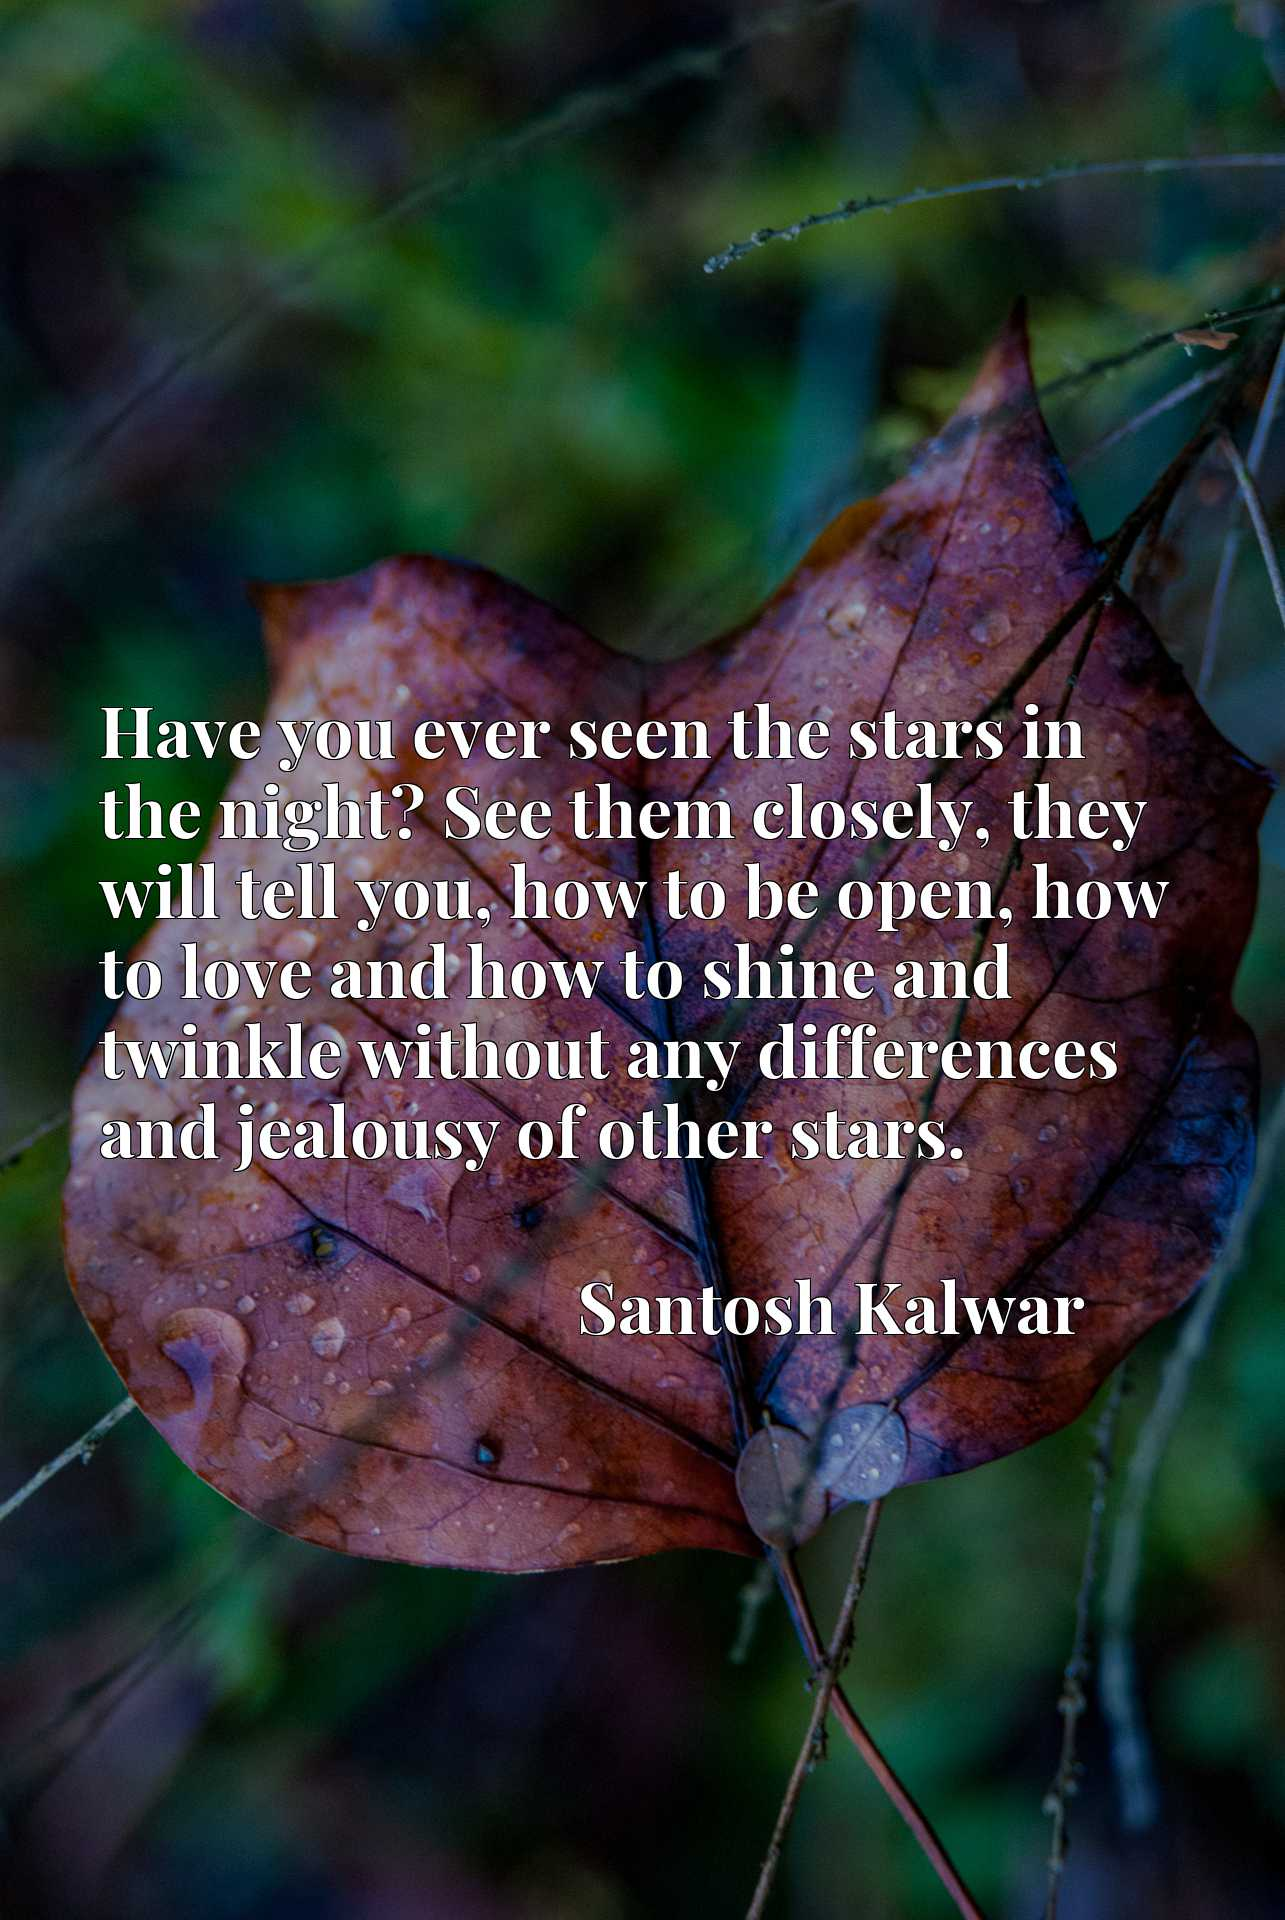 Have you ever seen the stars in the night? See them closely, they will tell you, how to be open, how to love and how to shine and twinkle without any differences and jealousy of other stars.